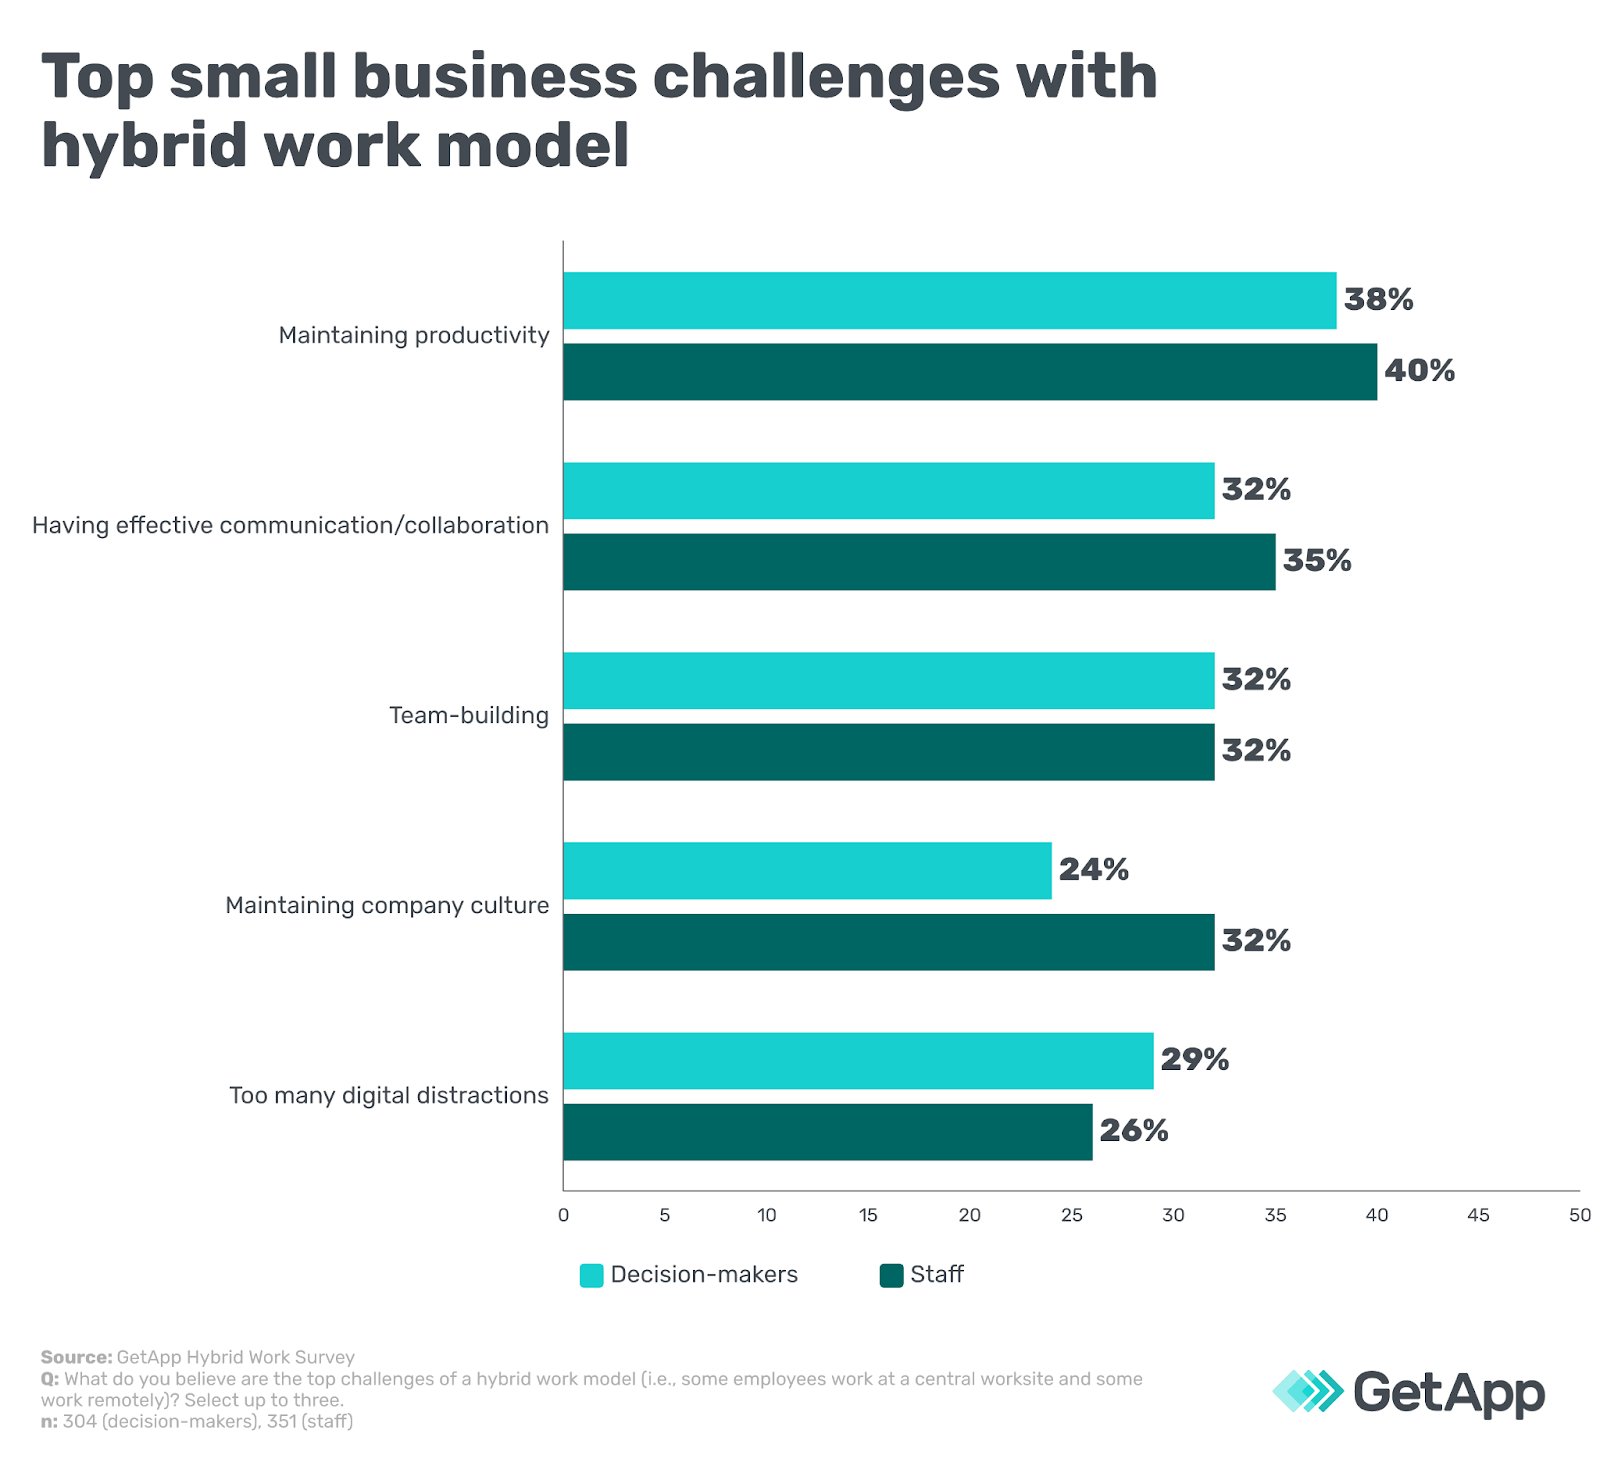 Top small business challenges due to the hybrid work models. Schedules can help maintain productivity, improve collaboration, and team-building.